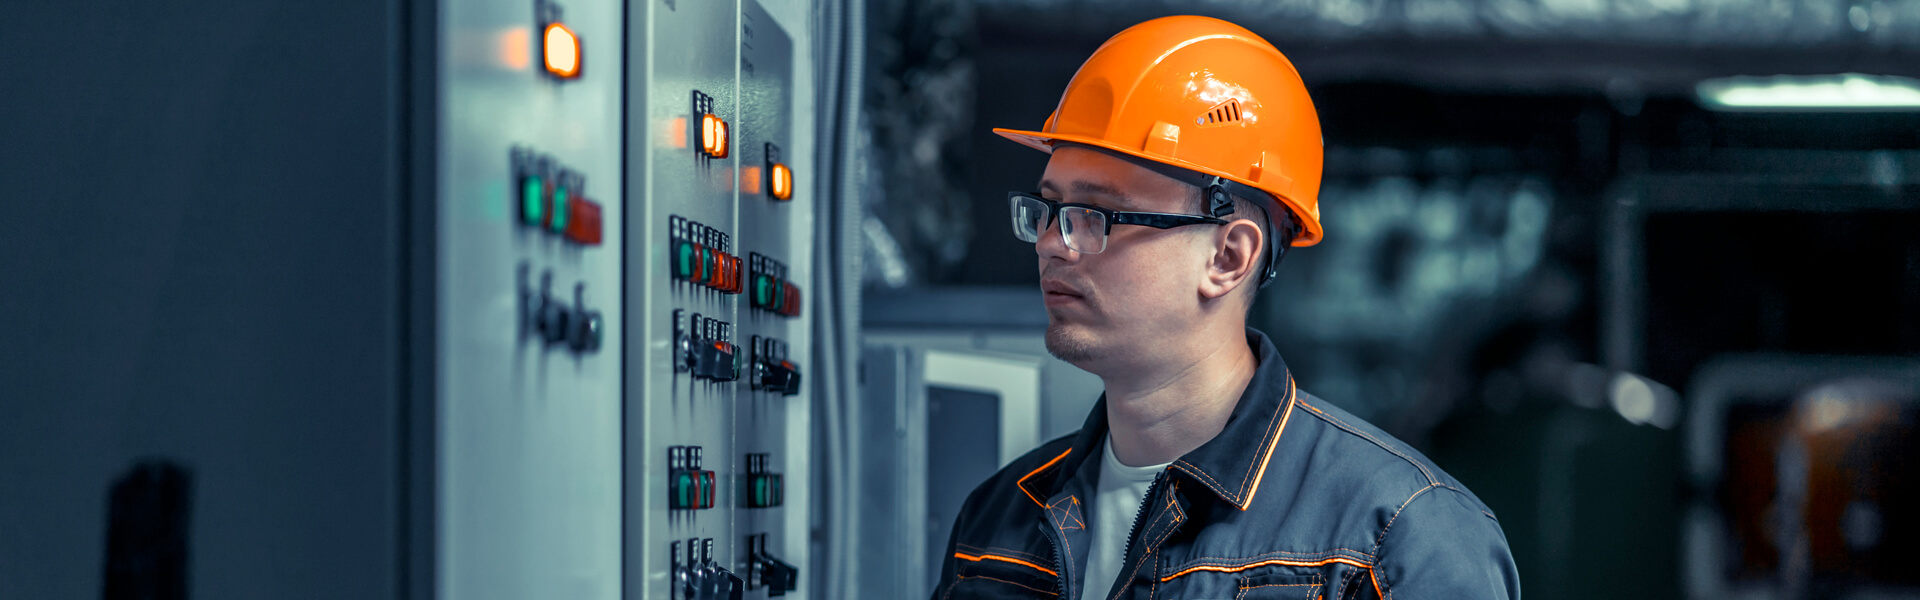 End to end seamless connectivity and intelligence in field service operations